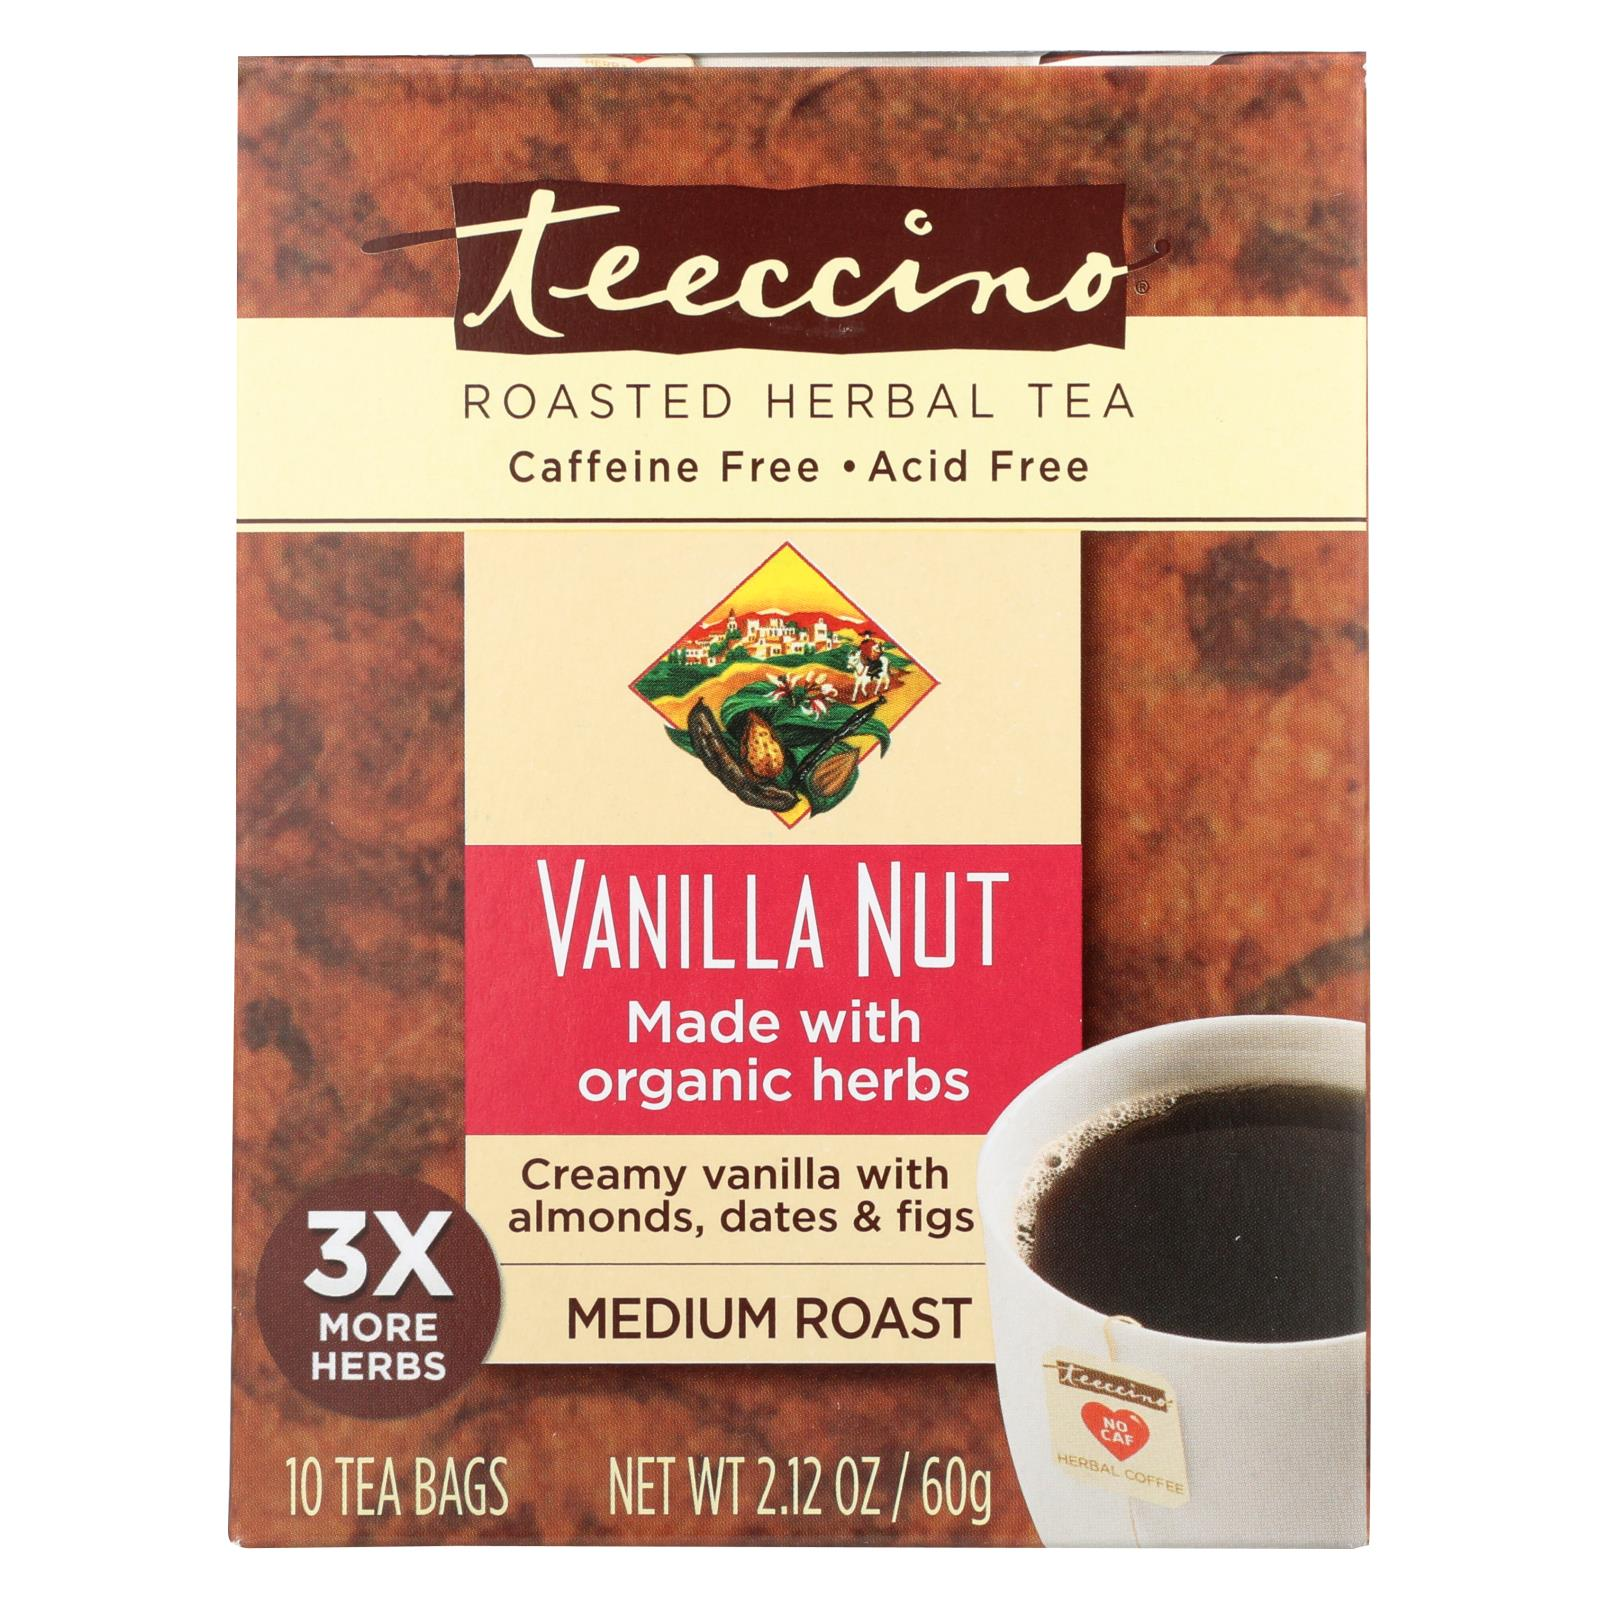 Buy Teeccino Herbal Coffee Vanilla Nut - 10 Tea Bags - Case of 6 - Beverages from Veroeco.com